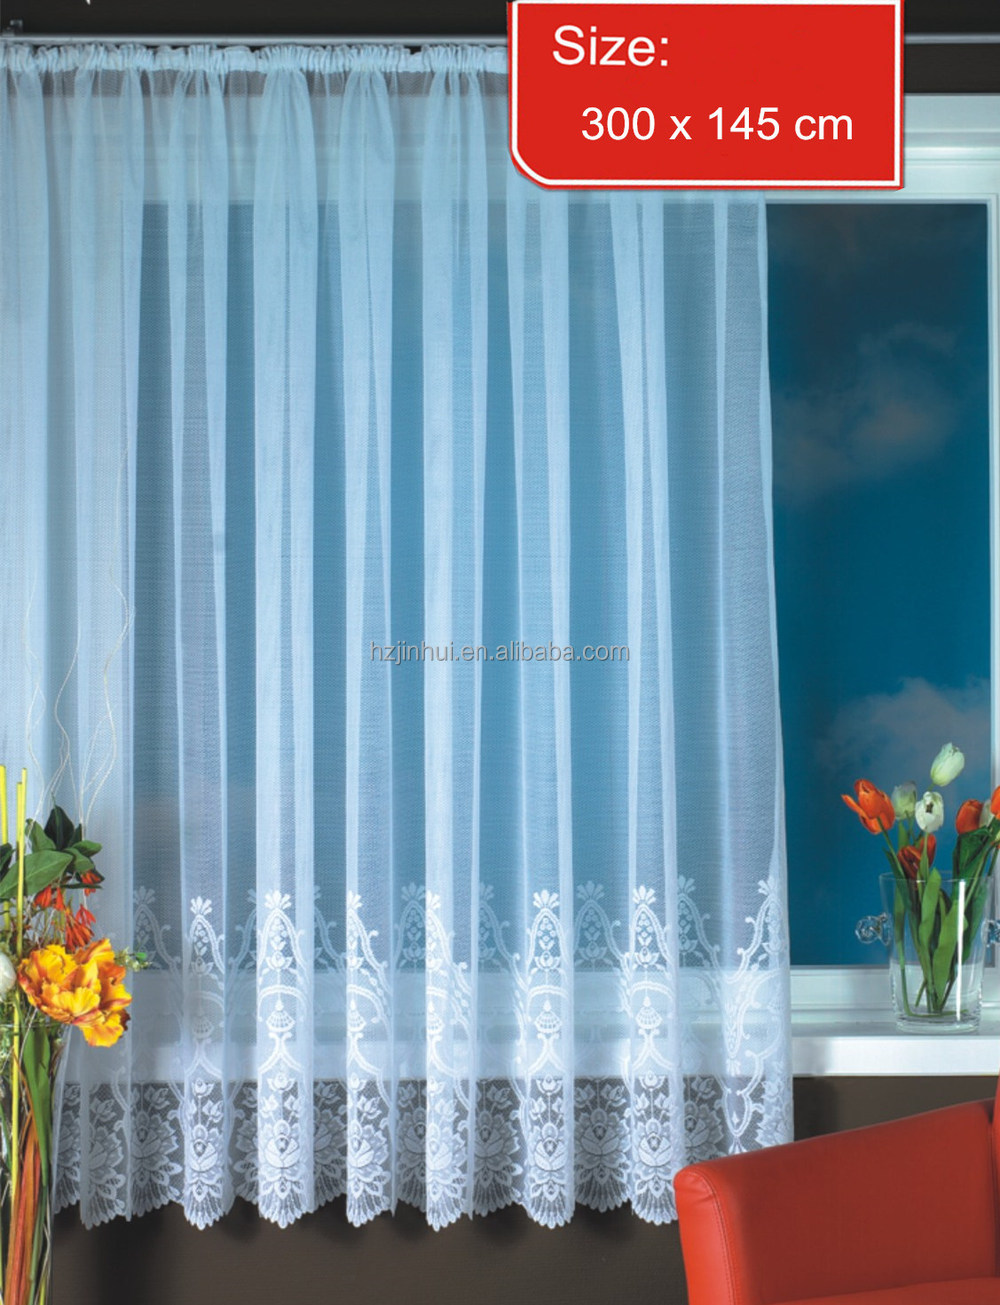 Lace Bedroom Curtains Lace Bedroom Curtains Rose Lace Curtains Walmart Lace Curtains